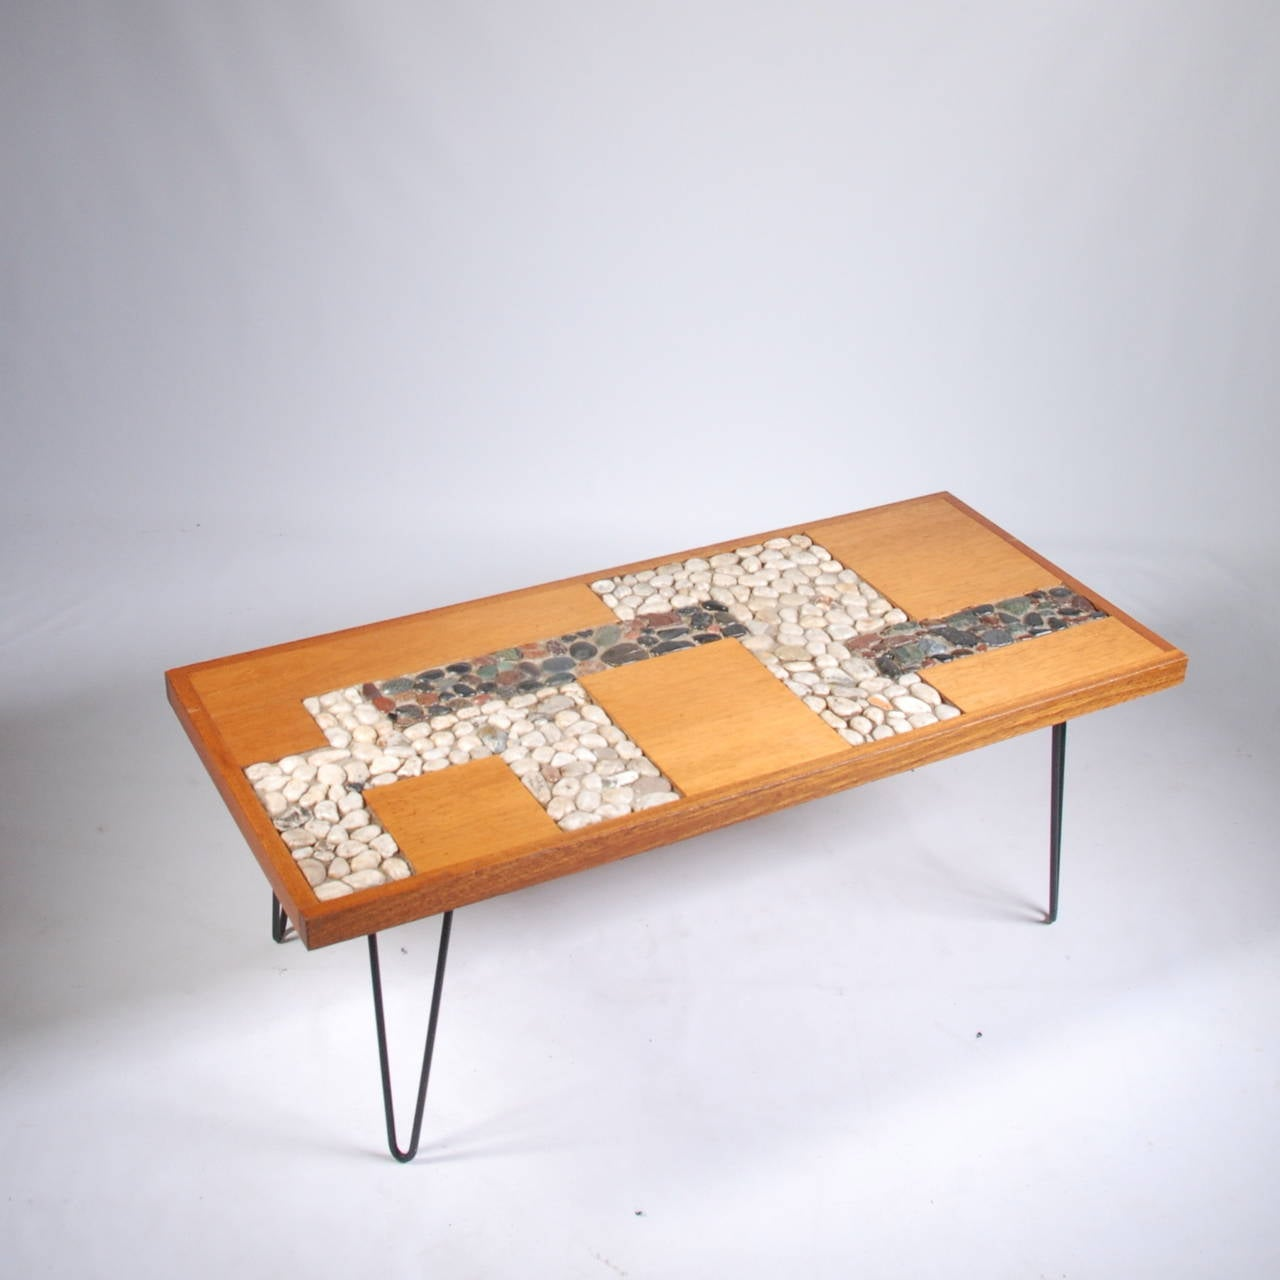 Mid century palm springs modern mahogany coffee table at for Palm springs modern furniture